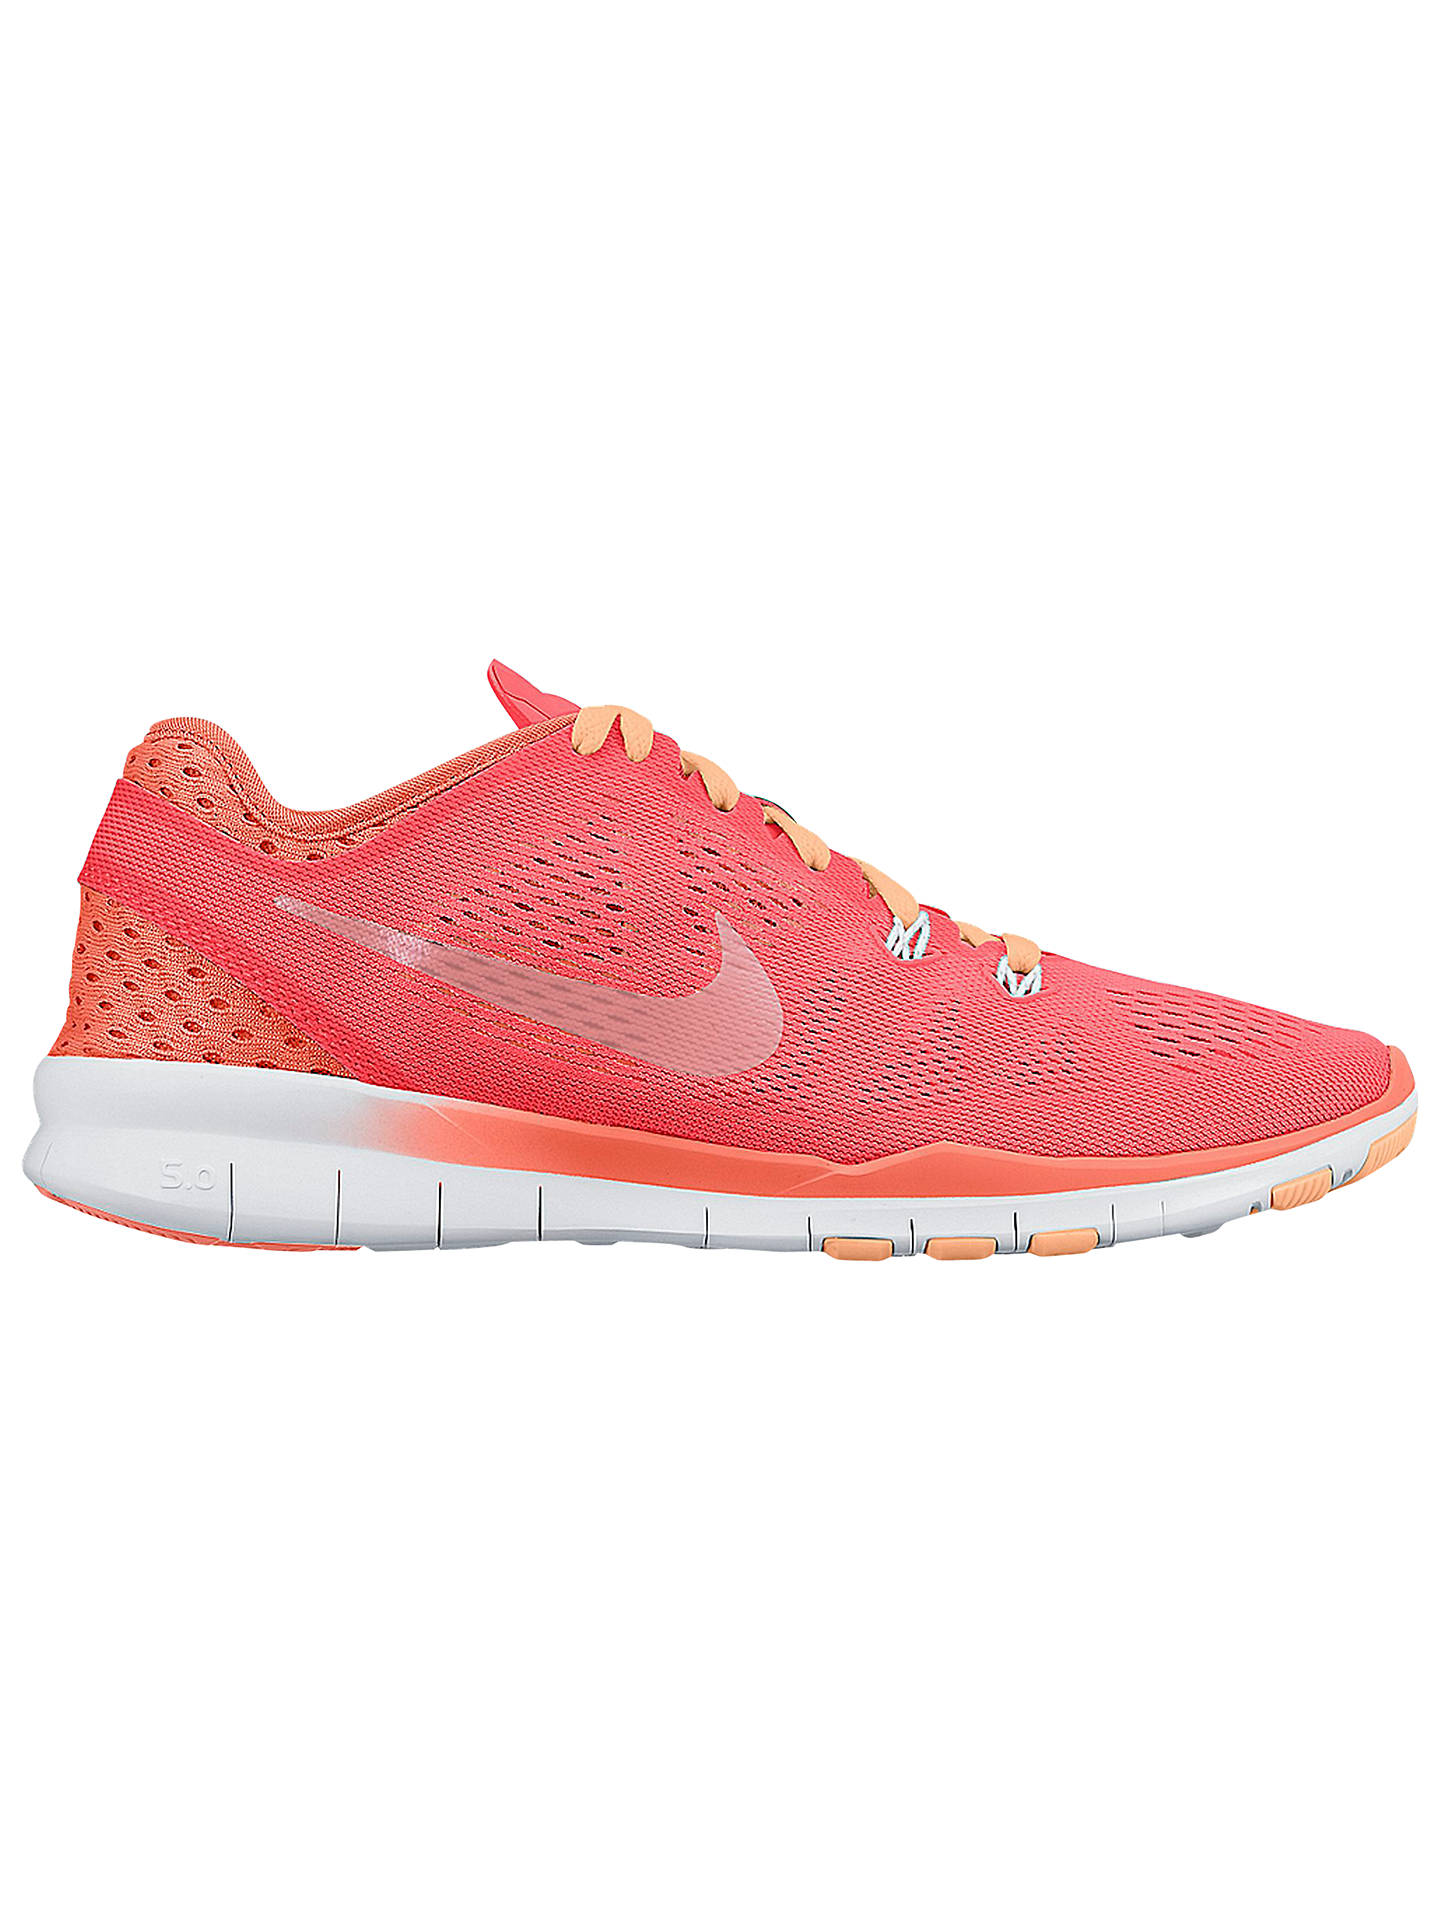 promo code 7d197 34cd5 Nike Free 5.0 TR Fit 5 Breathe Women's Cross Trainers at ...